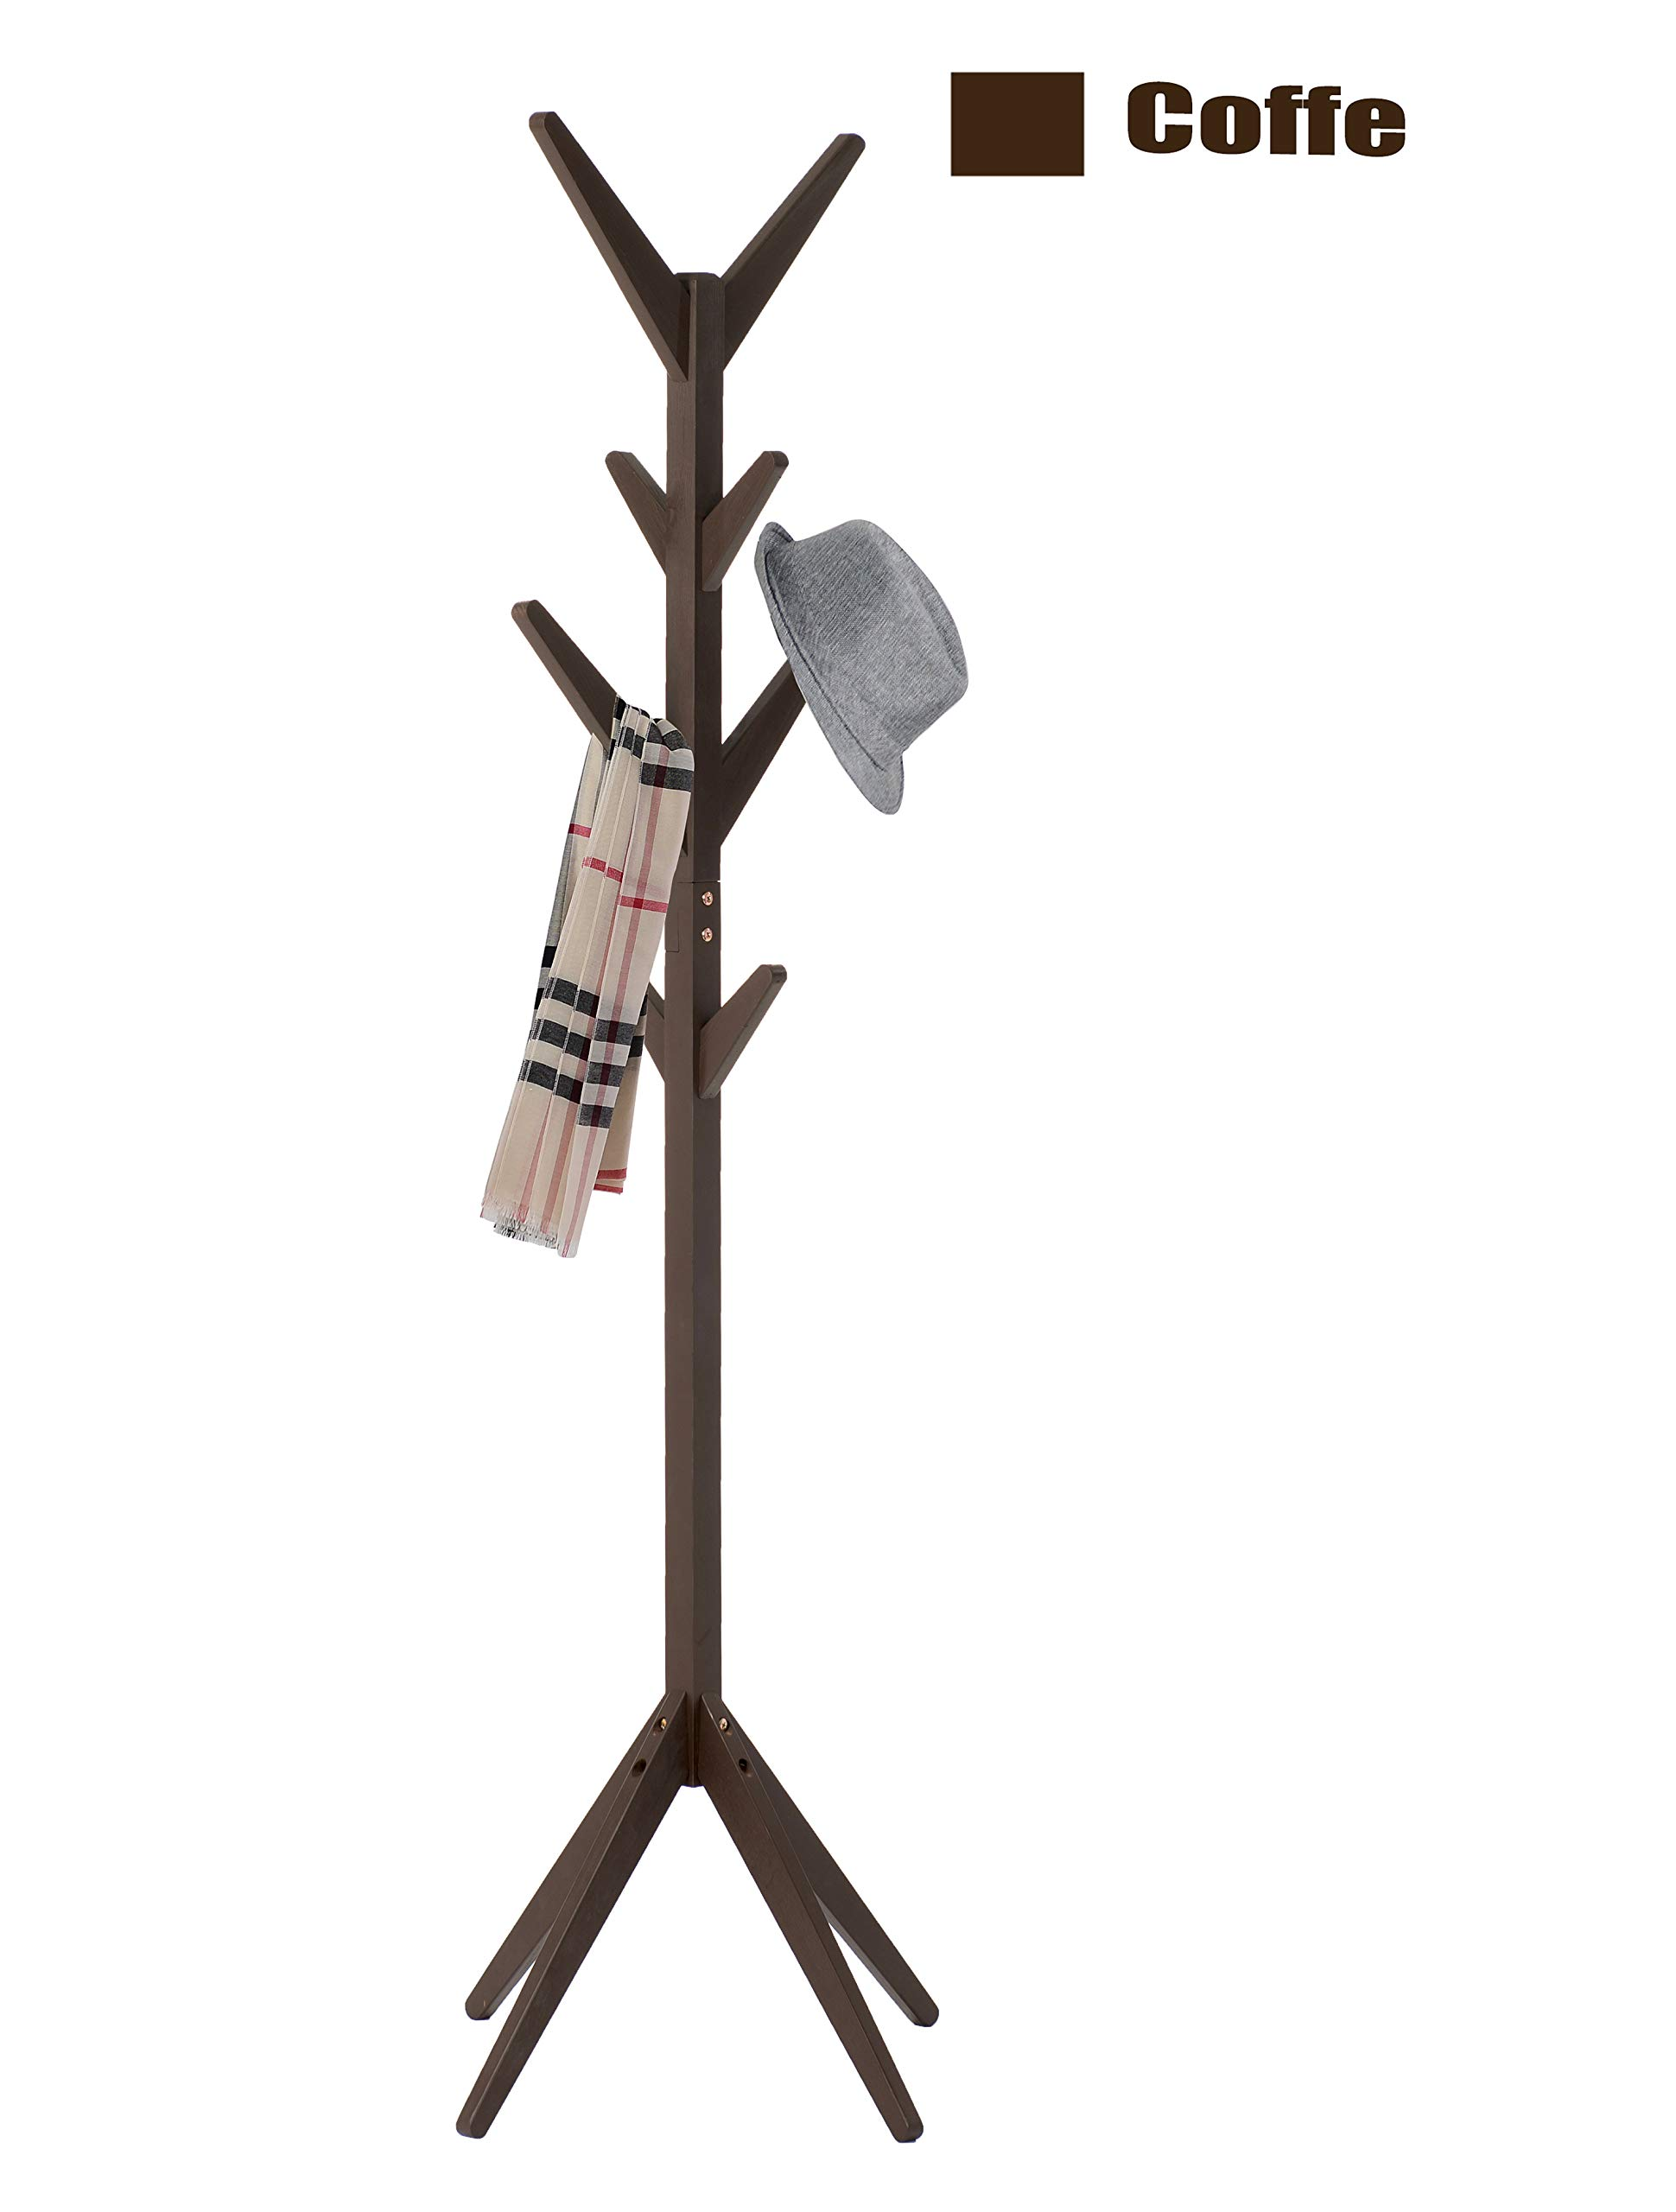 Neasyth Rubber Wood Coat Rack Entryway Standing Hall Tree Tetrapod Base for Hat Jacket Scarf Hanger Rack in Living Room Bedroom (Coffe)